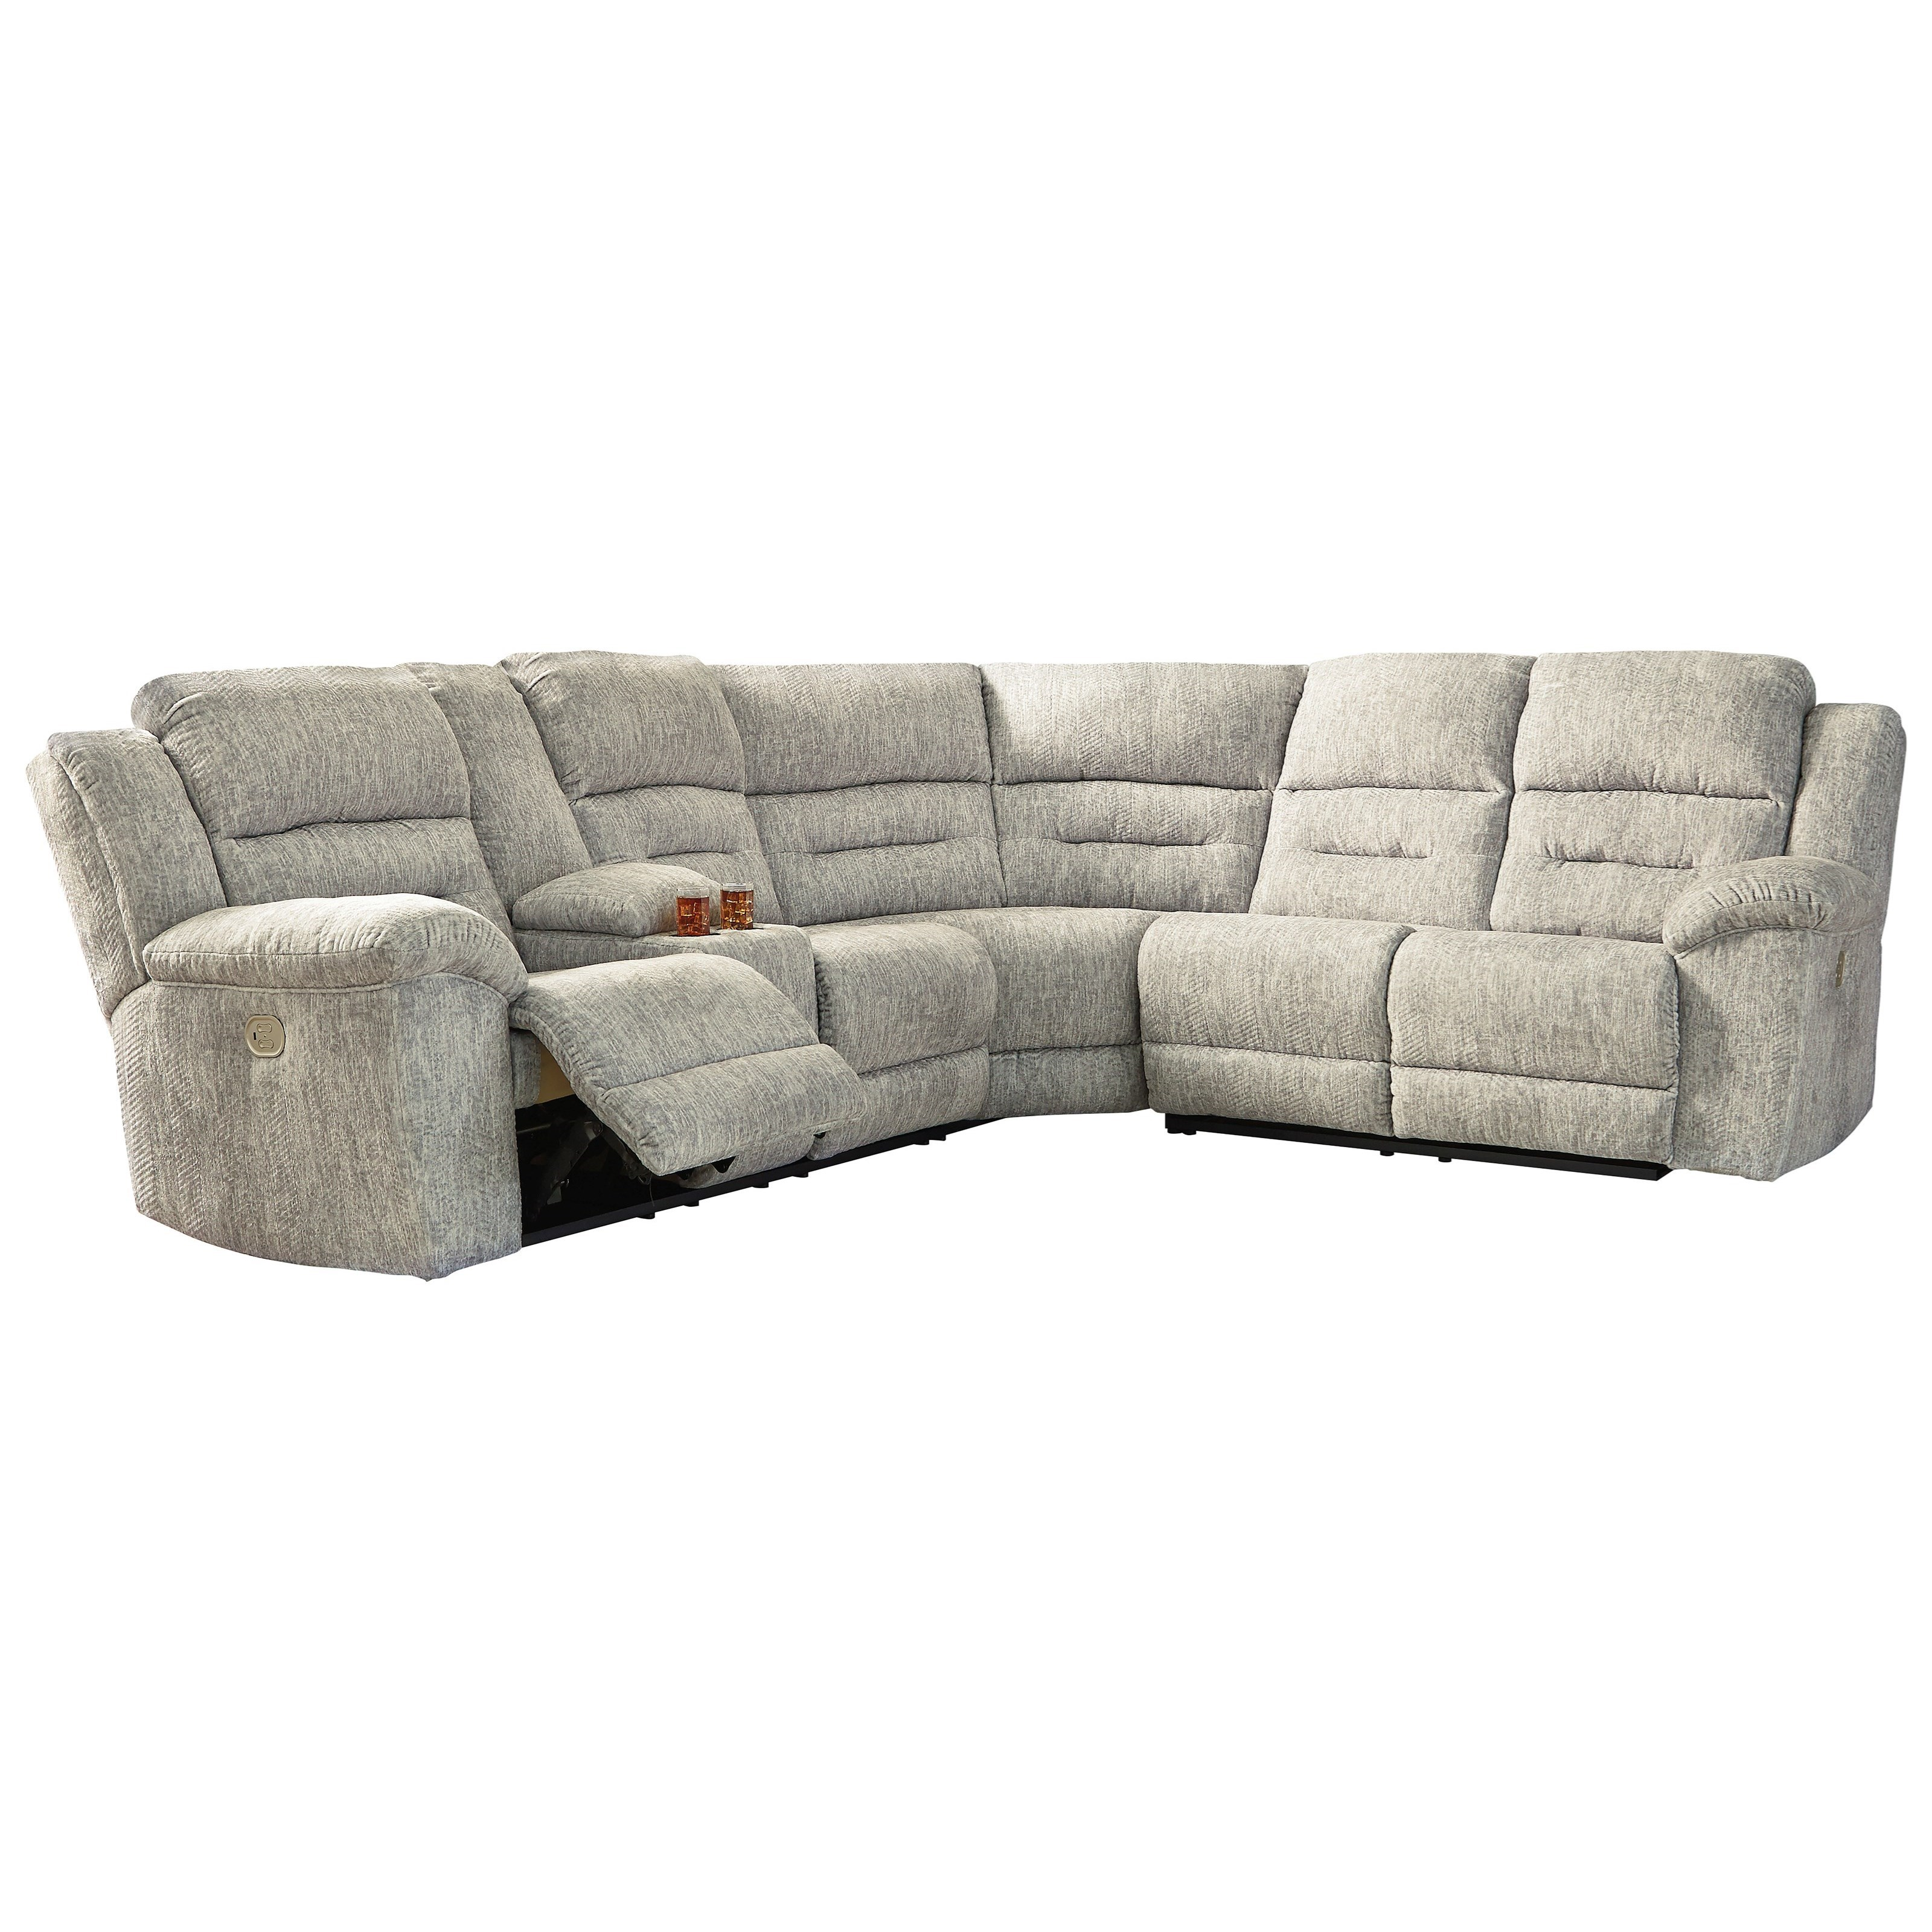 Family Den Power Reclining Sectional by Signature Design by Ashley at Zak's Warehouse Clearance Center